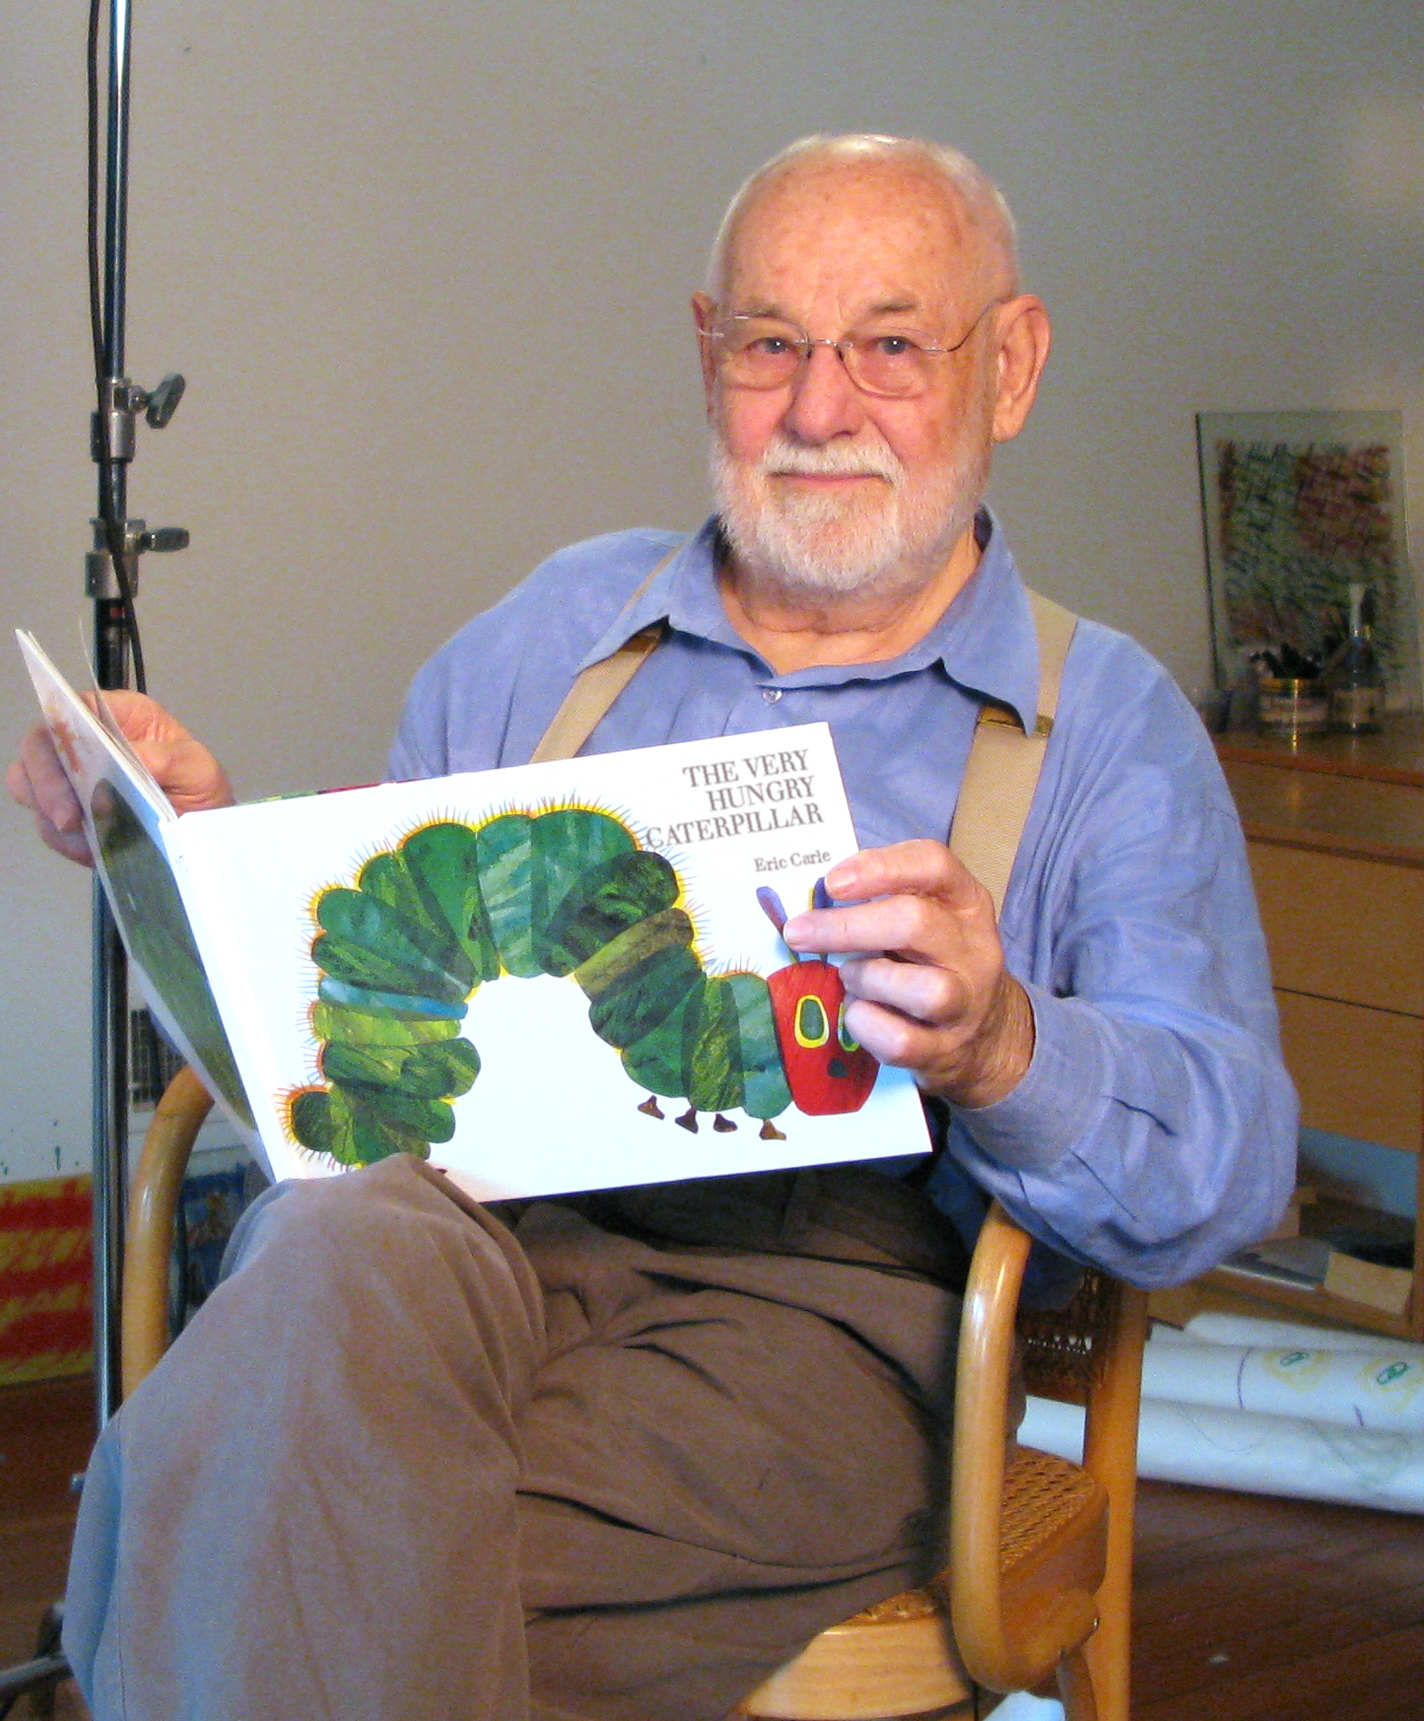 Interview With Eric Carle Of The Very Hungry Caterpillar